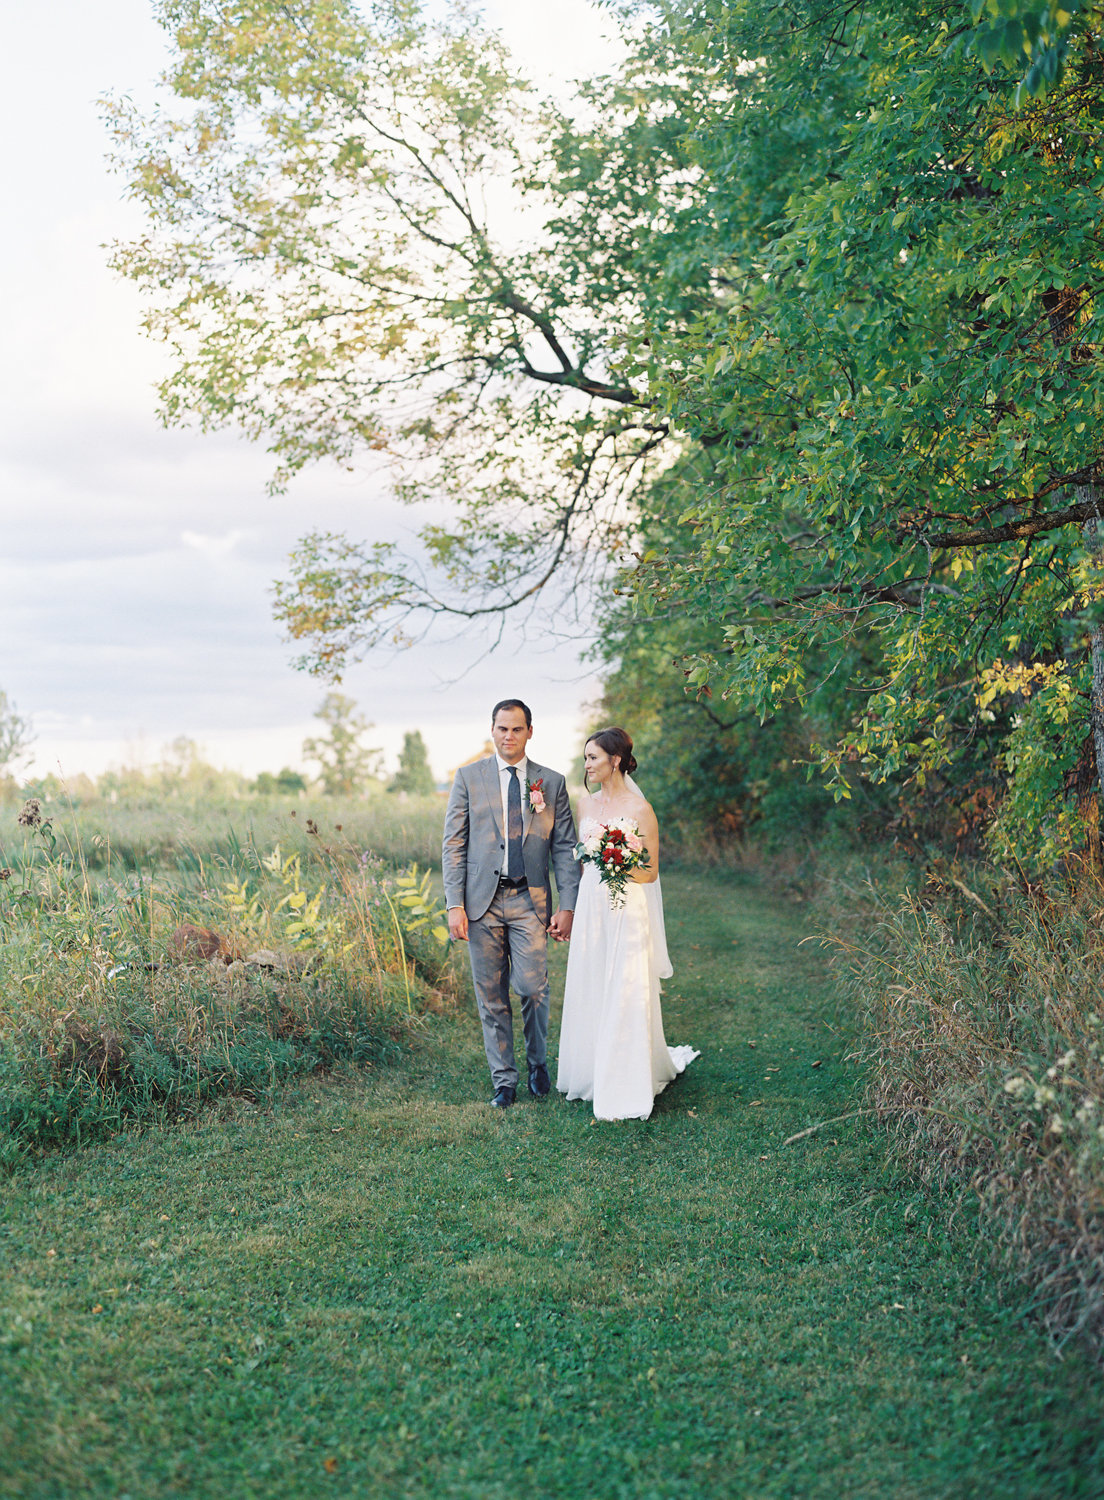 Jacqueline Anne Photography - Ottawa vineyard wedding-16